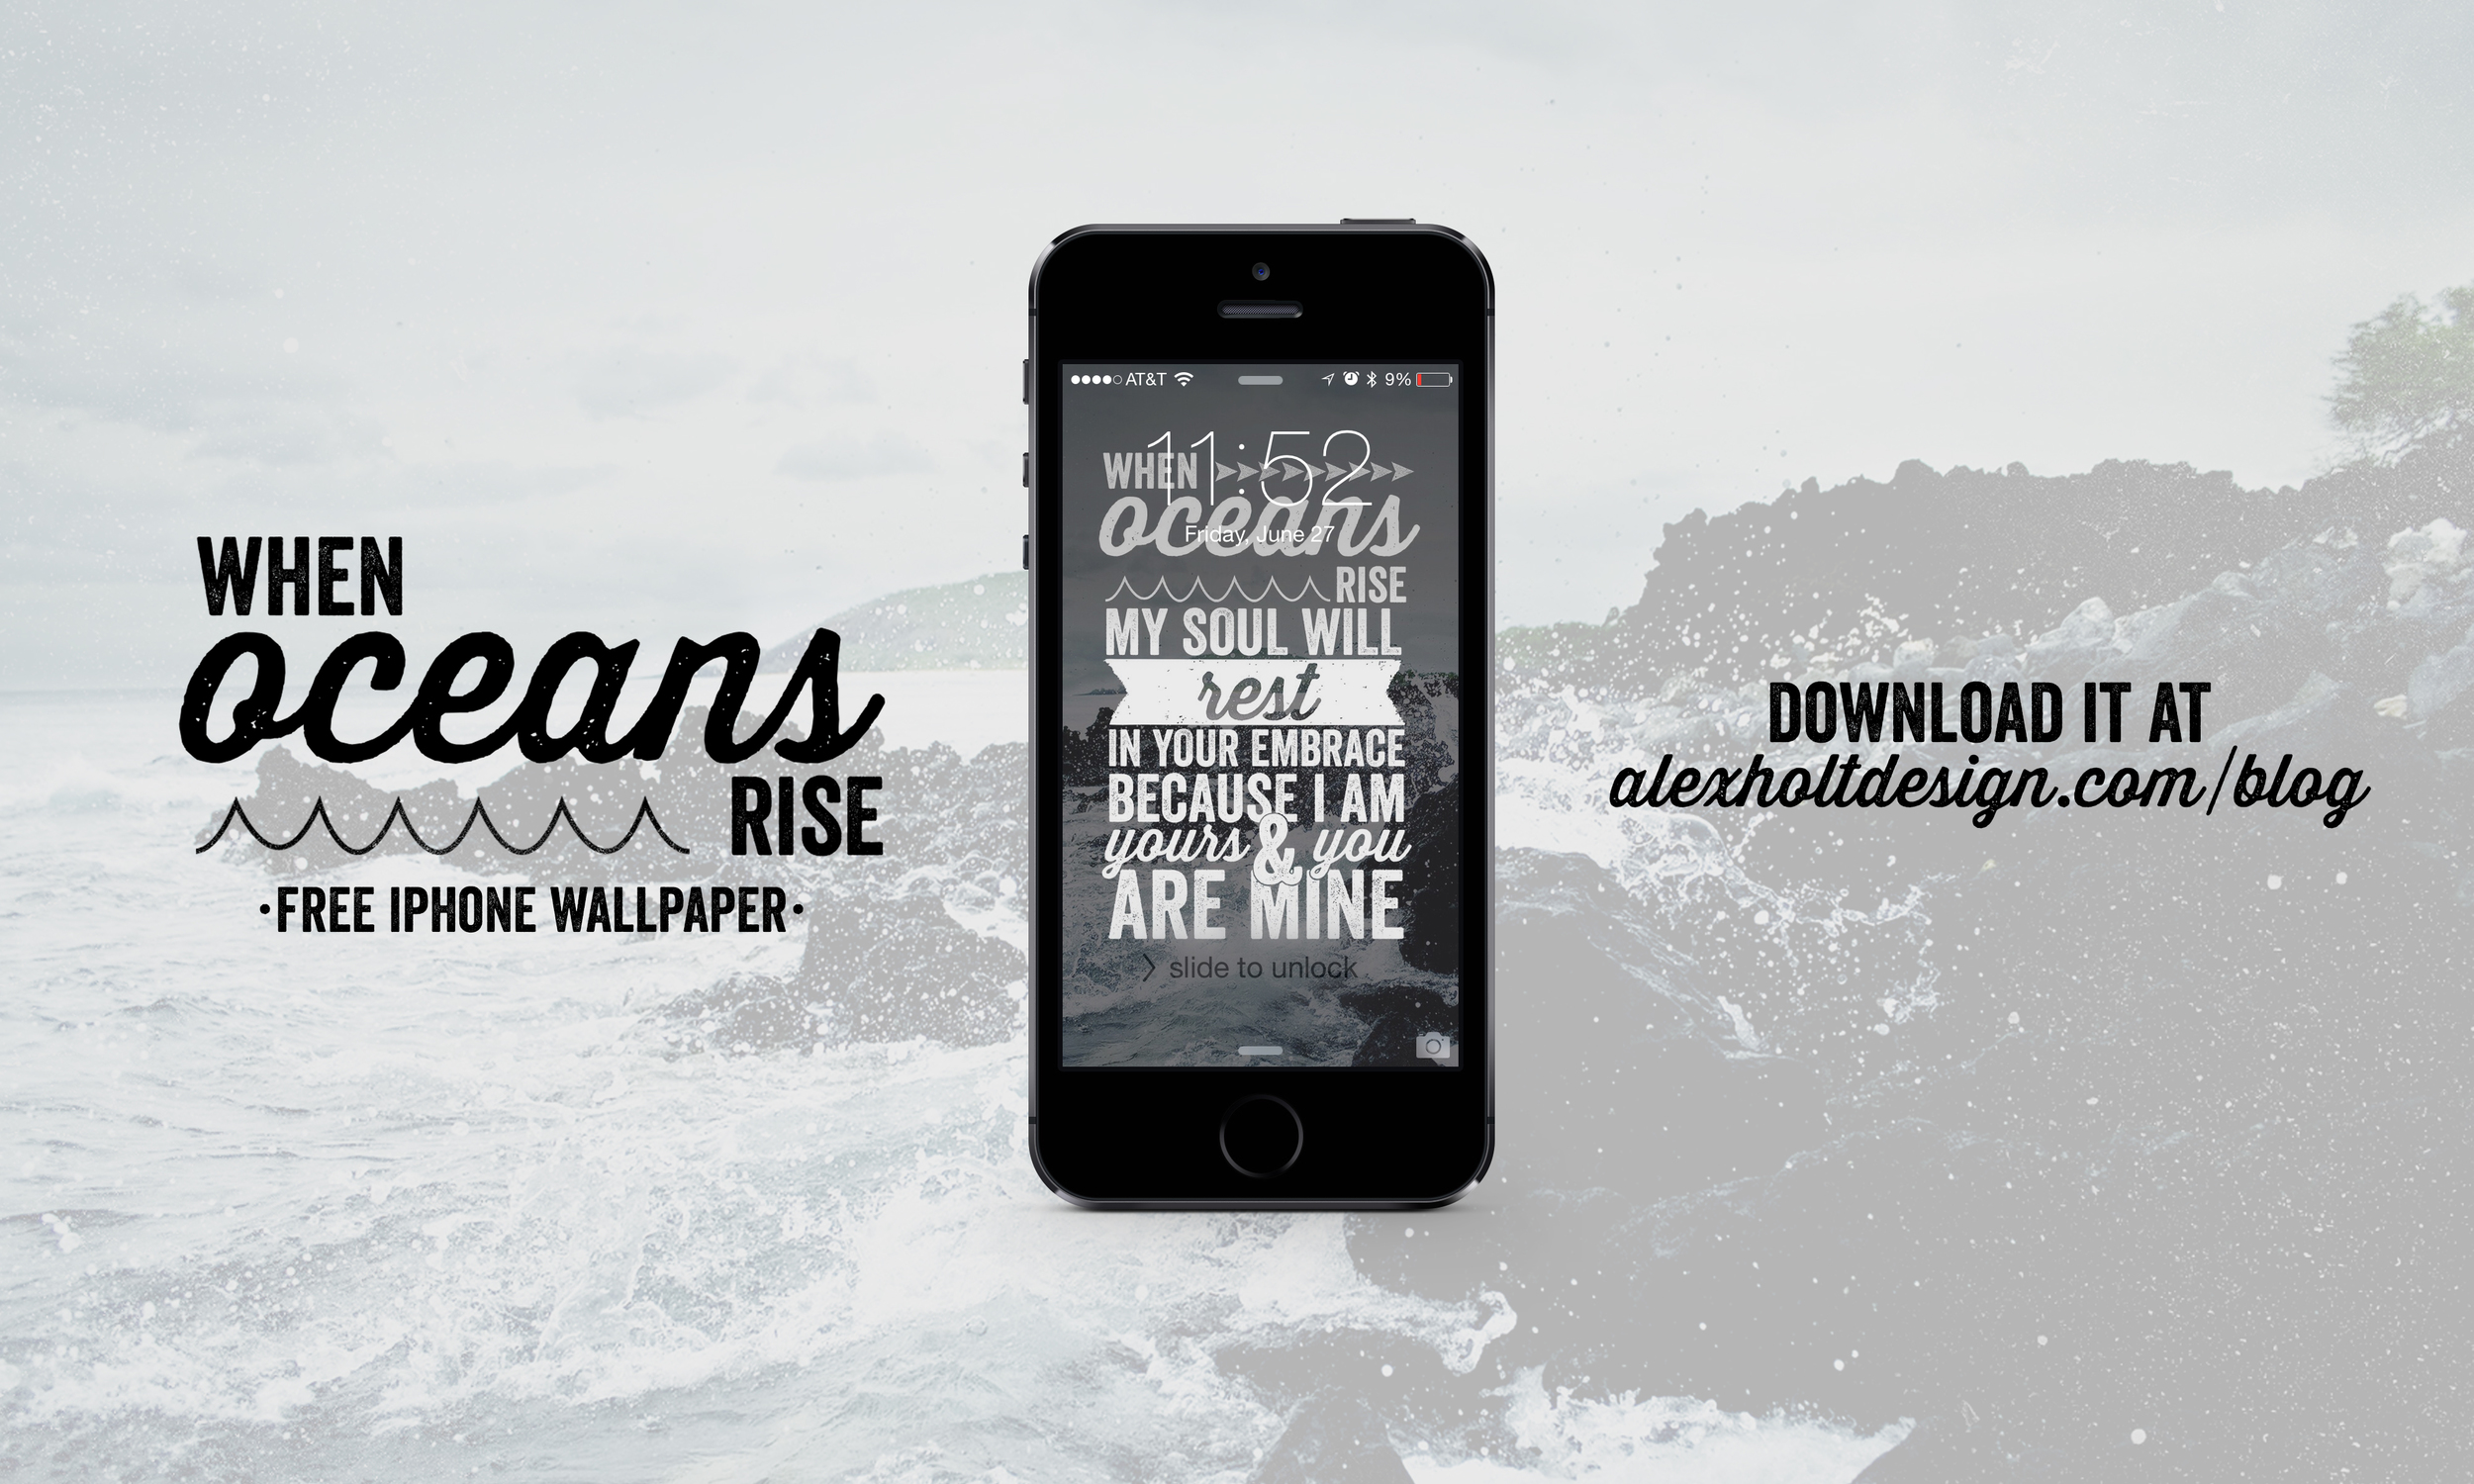 WhenOceansRise-iPhonePromo-AH.jpg